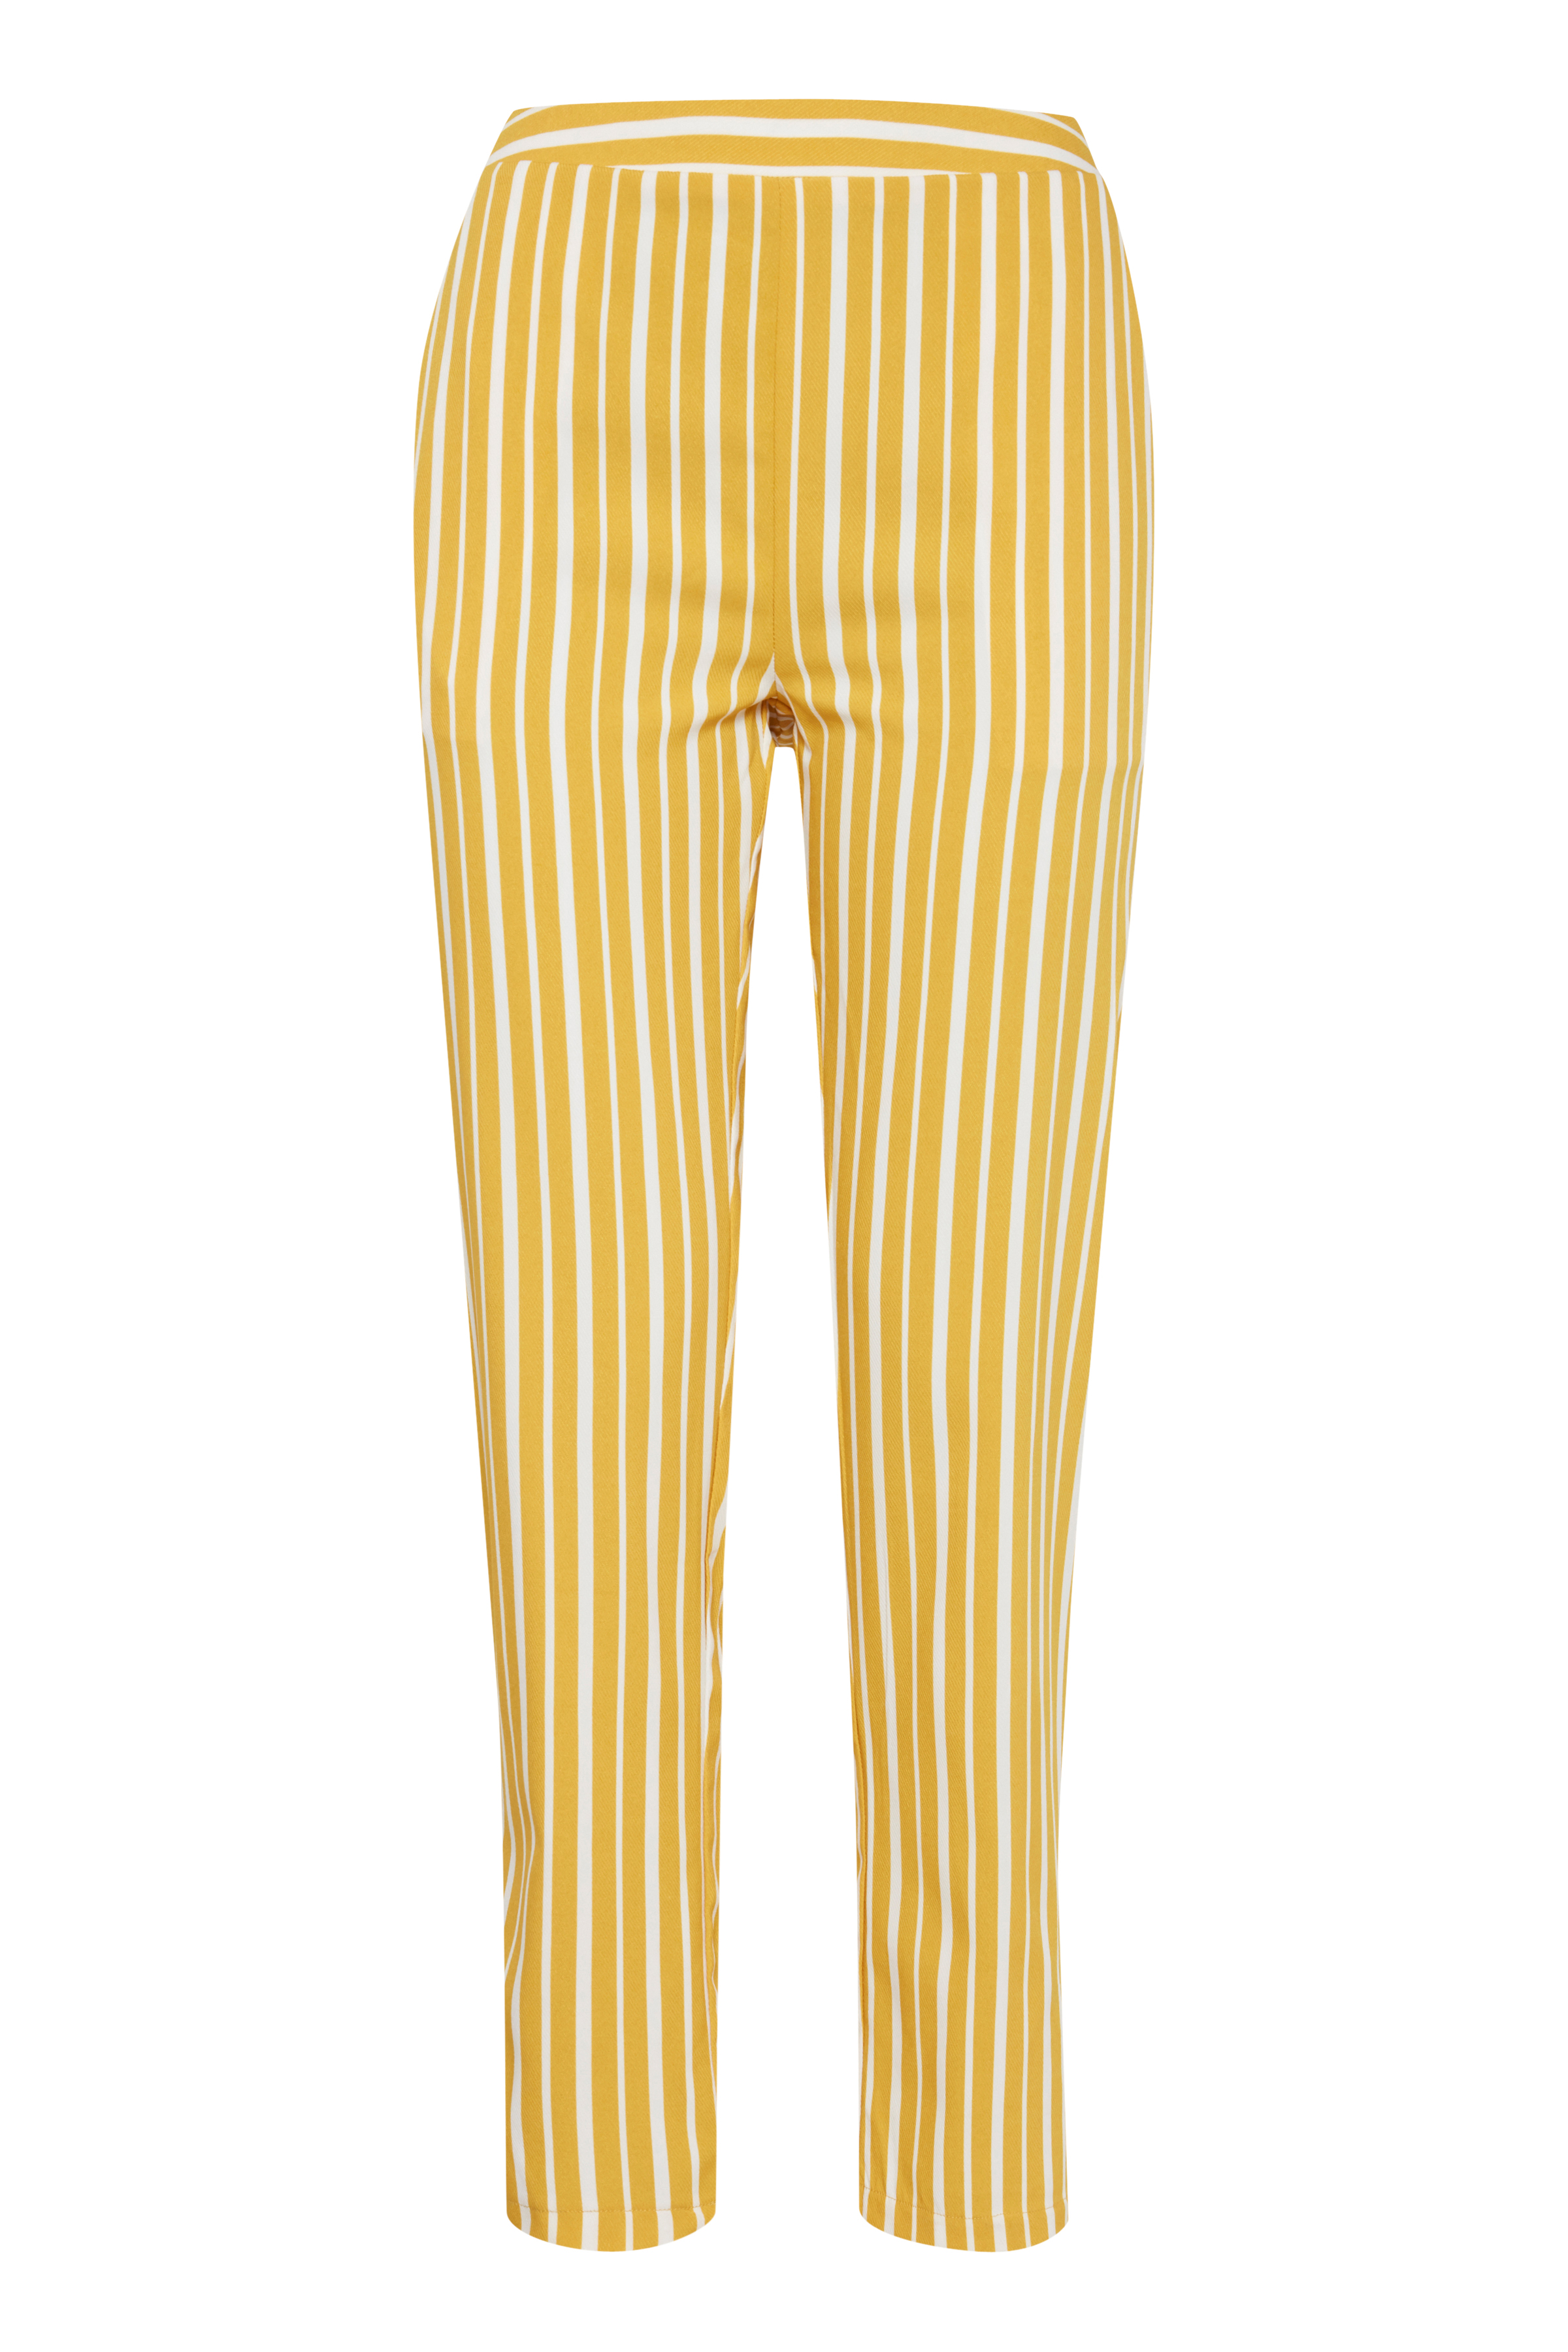 Ochre Yellow Pants Casual from b.young – Buy Ochre Yellow Pants Casual from size 34-42 here